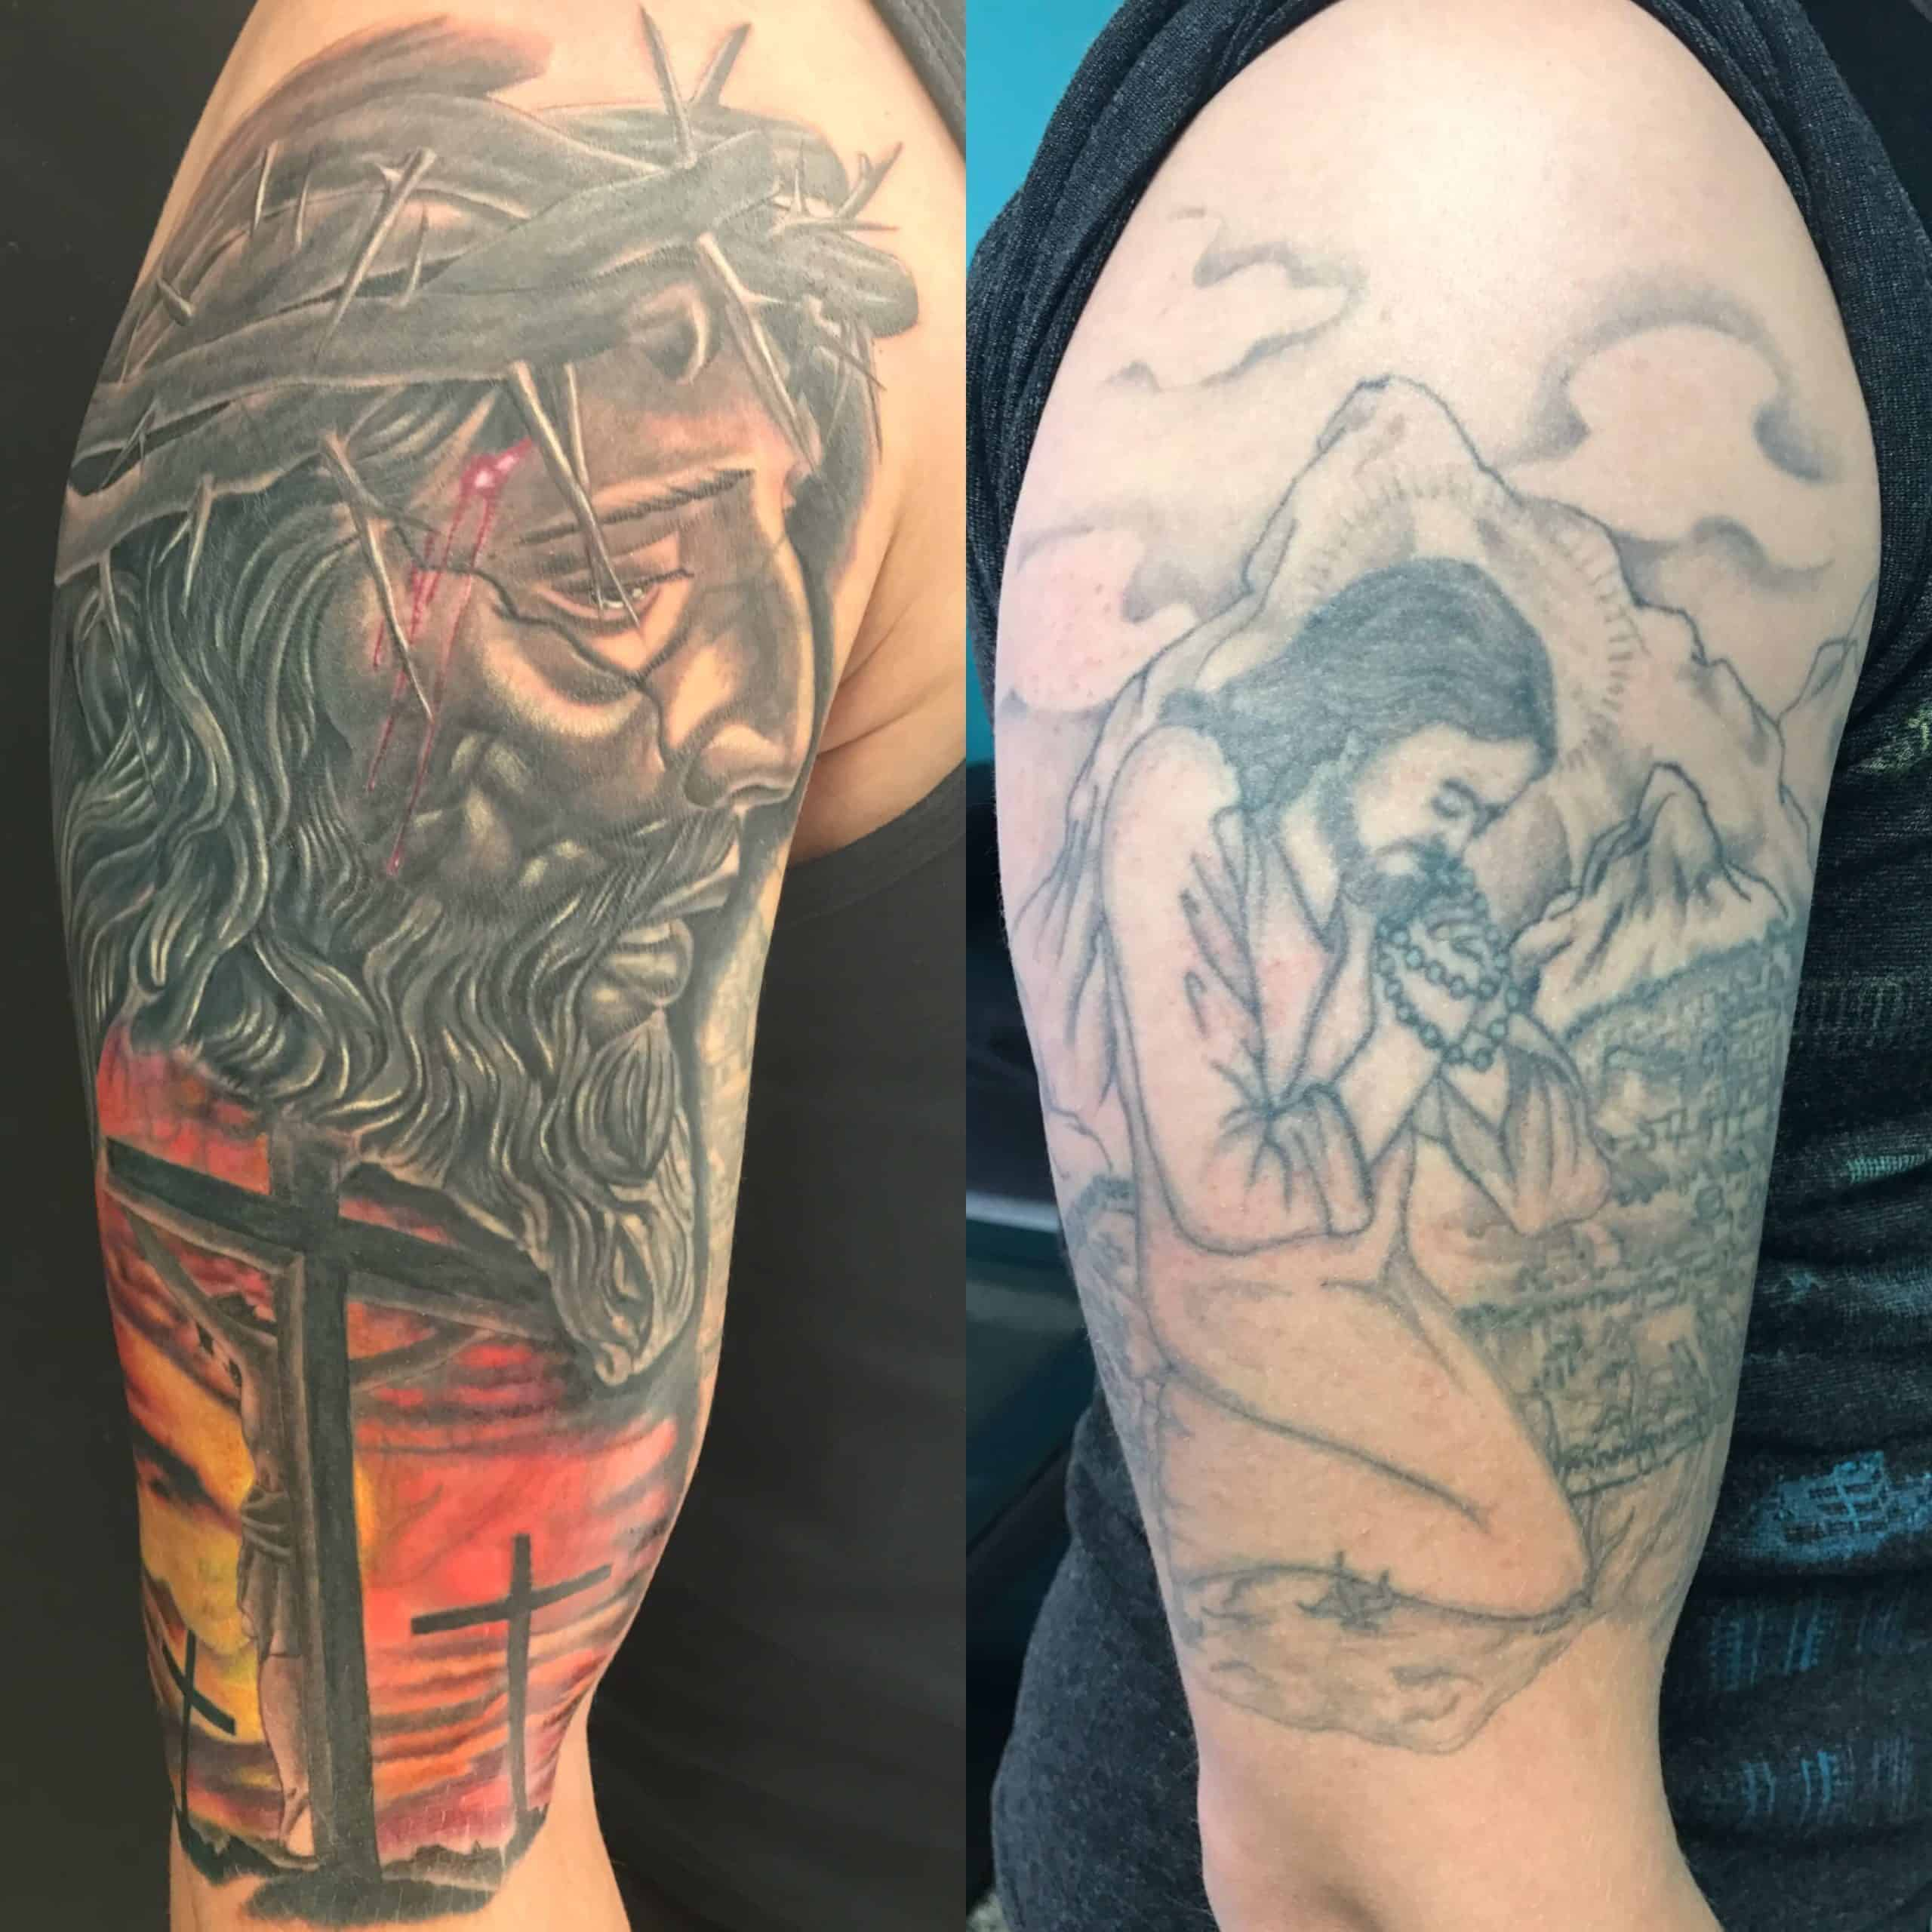 Best Cover up Tattoo Artists in Fort Lauderdale   Bad Habits Tattoos